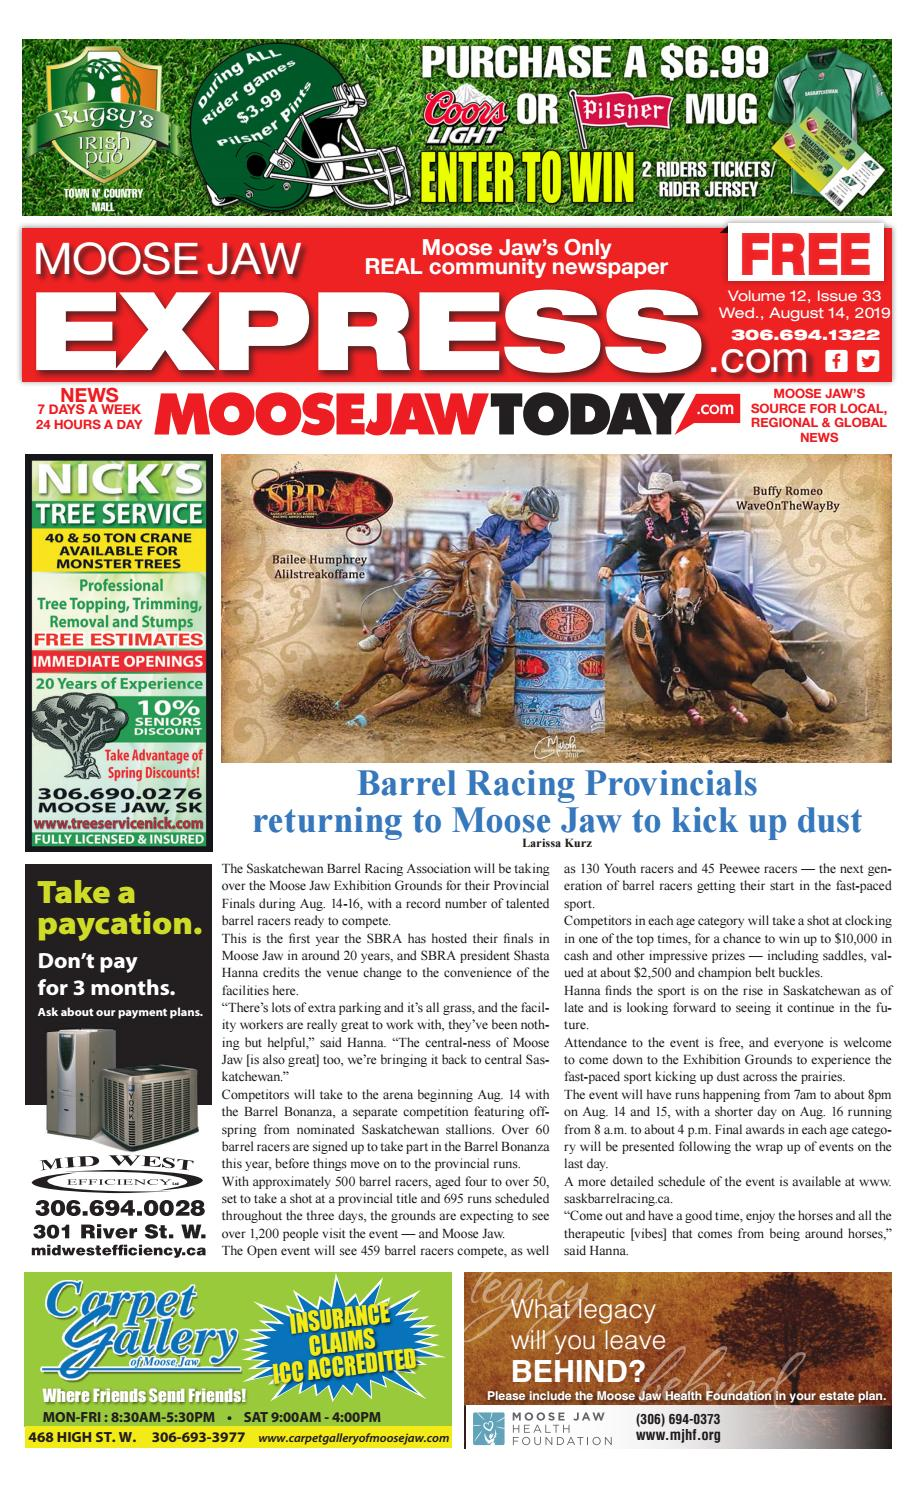 Moose Jaw Express August 14, 2019 by Moose Jaw Express - issuu